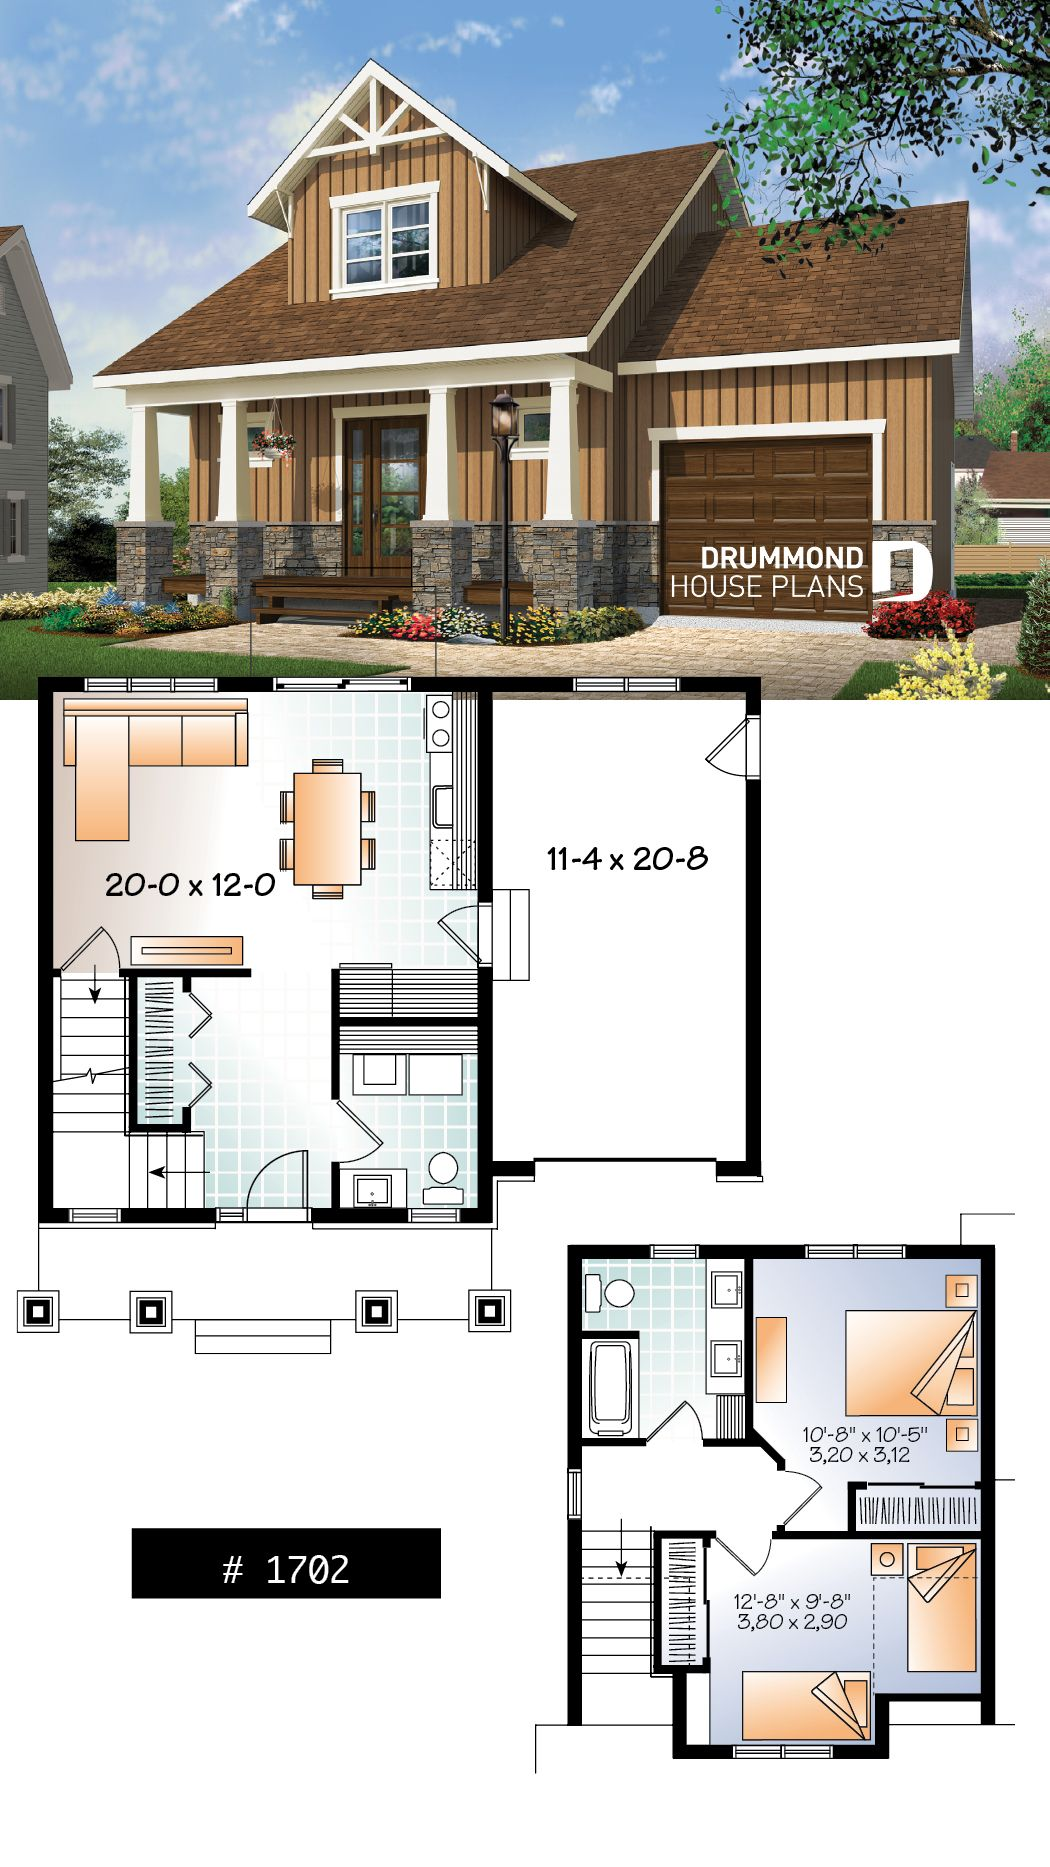 25 The Small Kitchen Layout With Island Floor Plans Tiny House Diaries Apikhome Com Open Floor House Plans Bedroom Floor Plans Small House Design